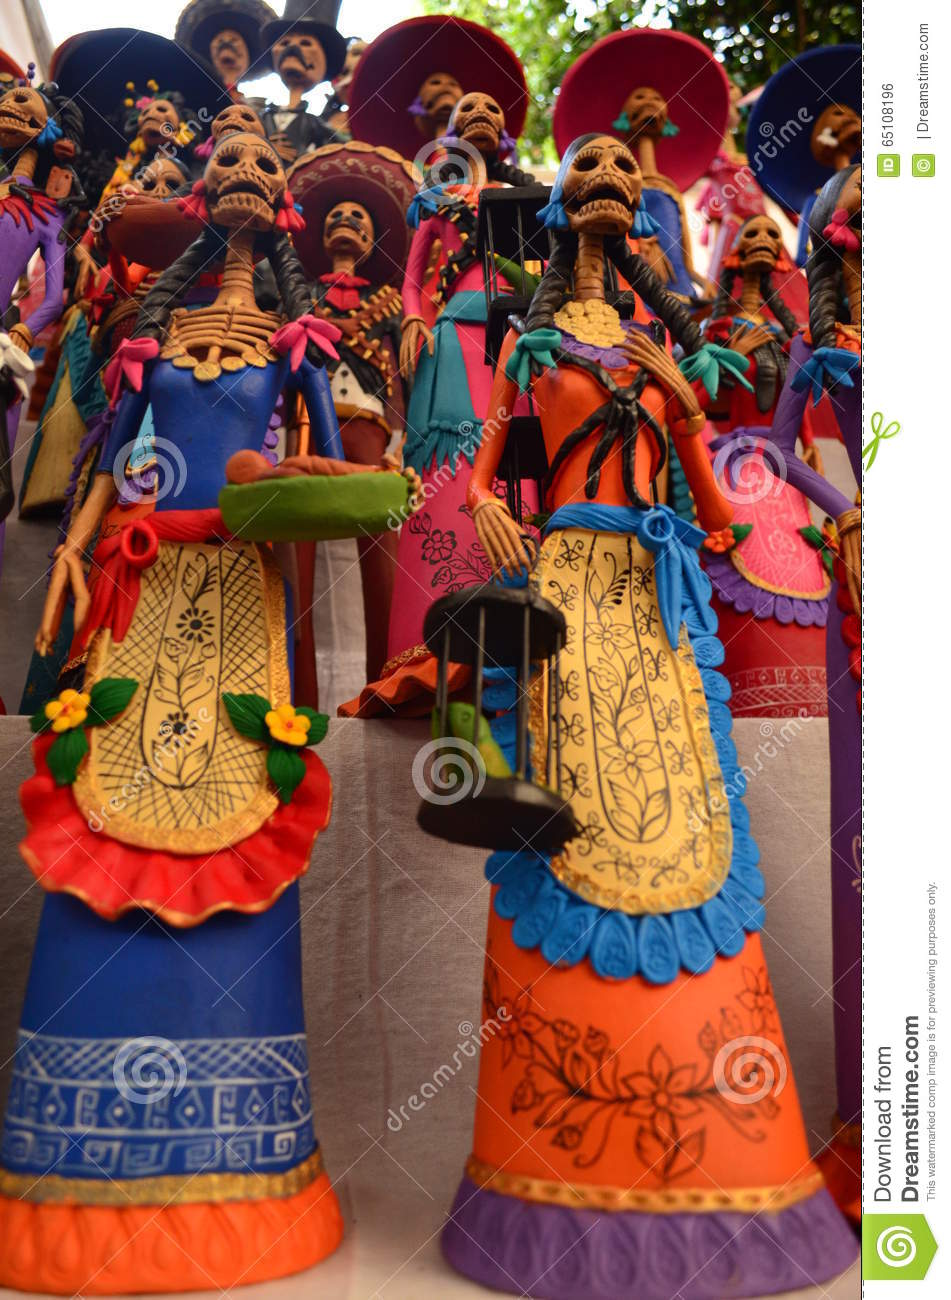 Catrinas of Capula created by mexican craftsmen